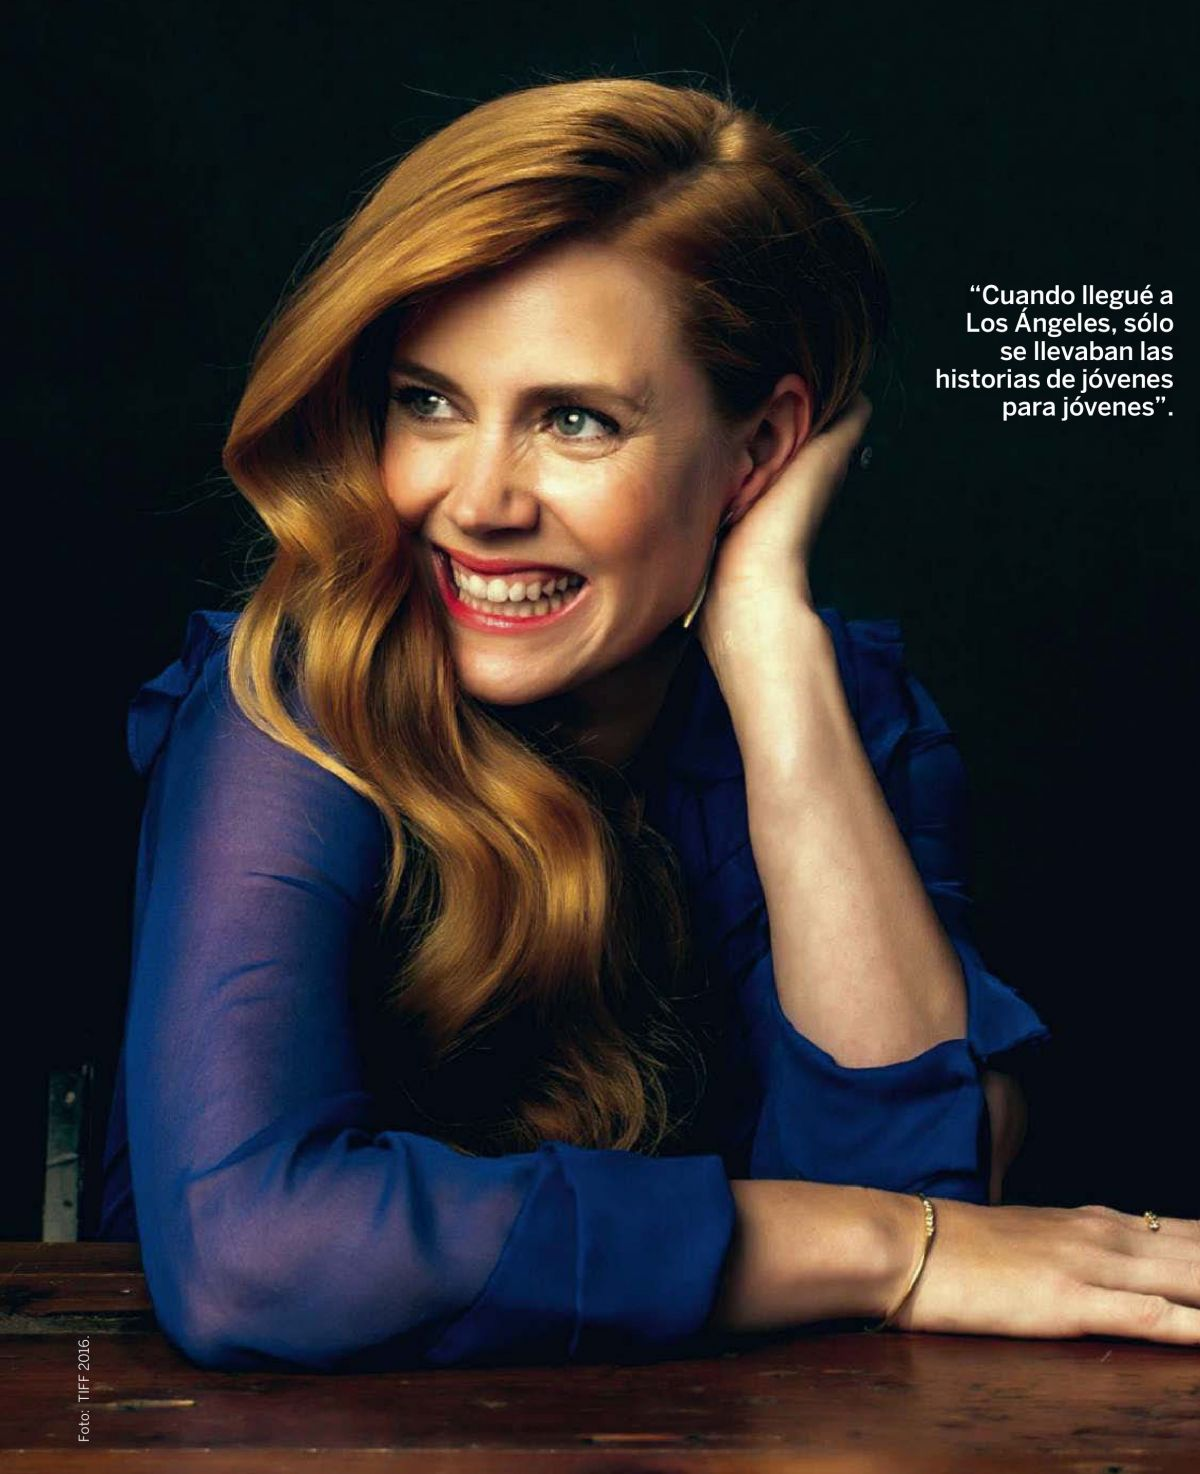 AMY ADAMS in Fotograma... Amy Adams